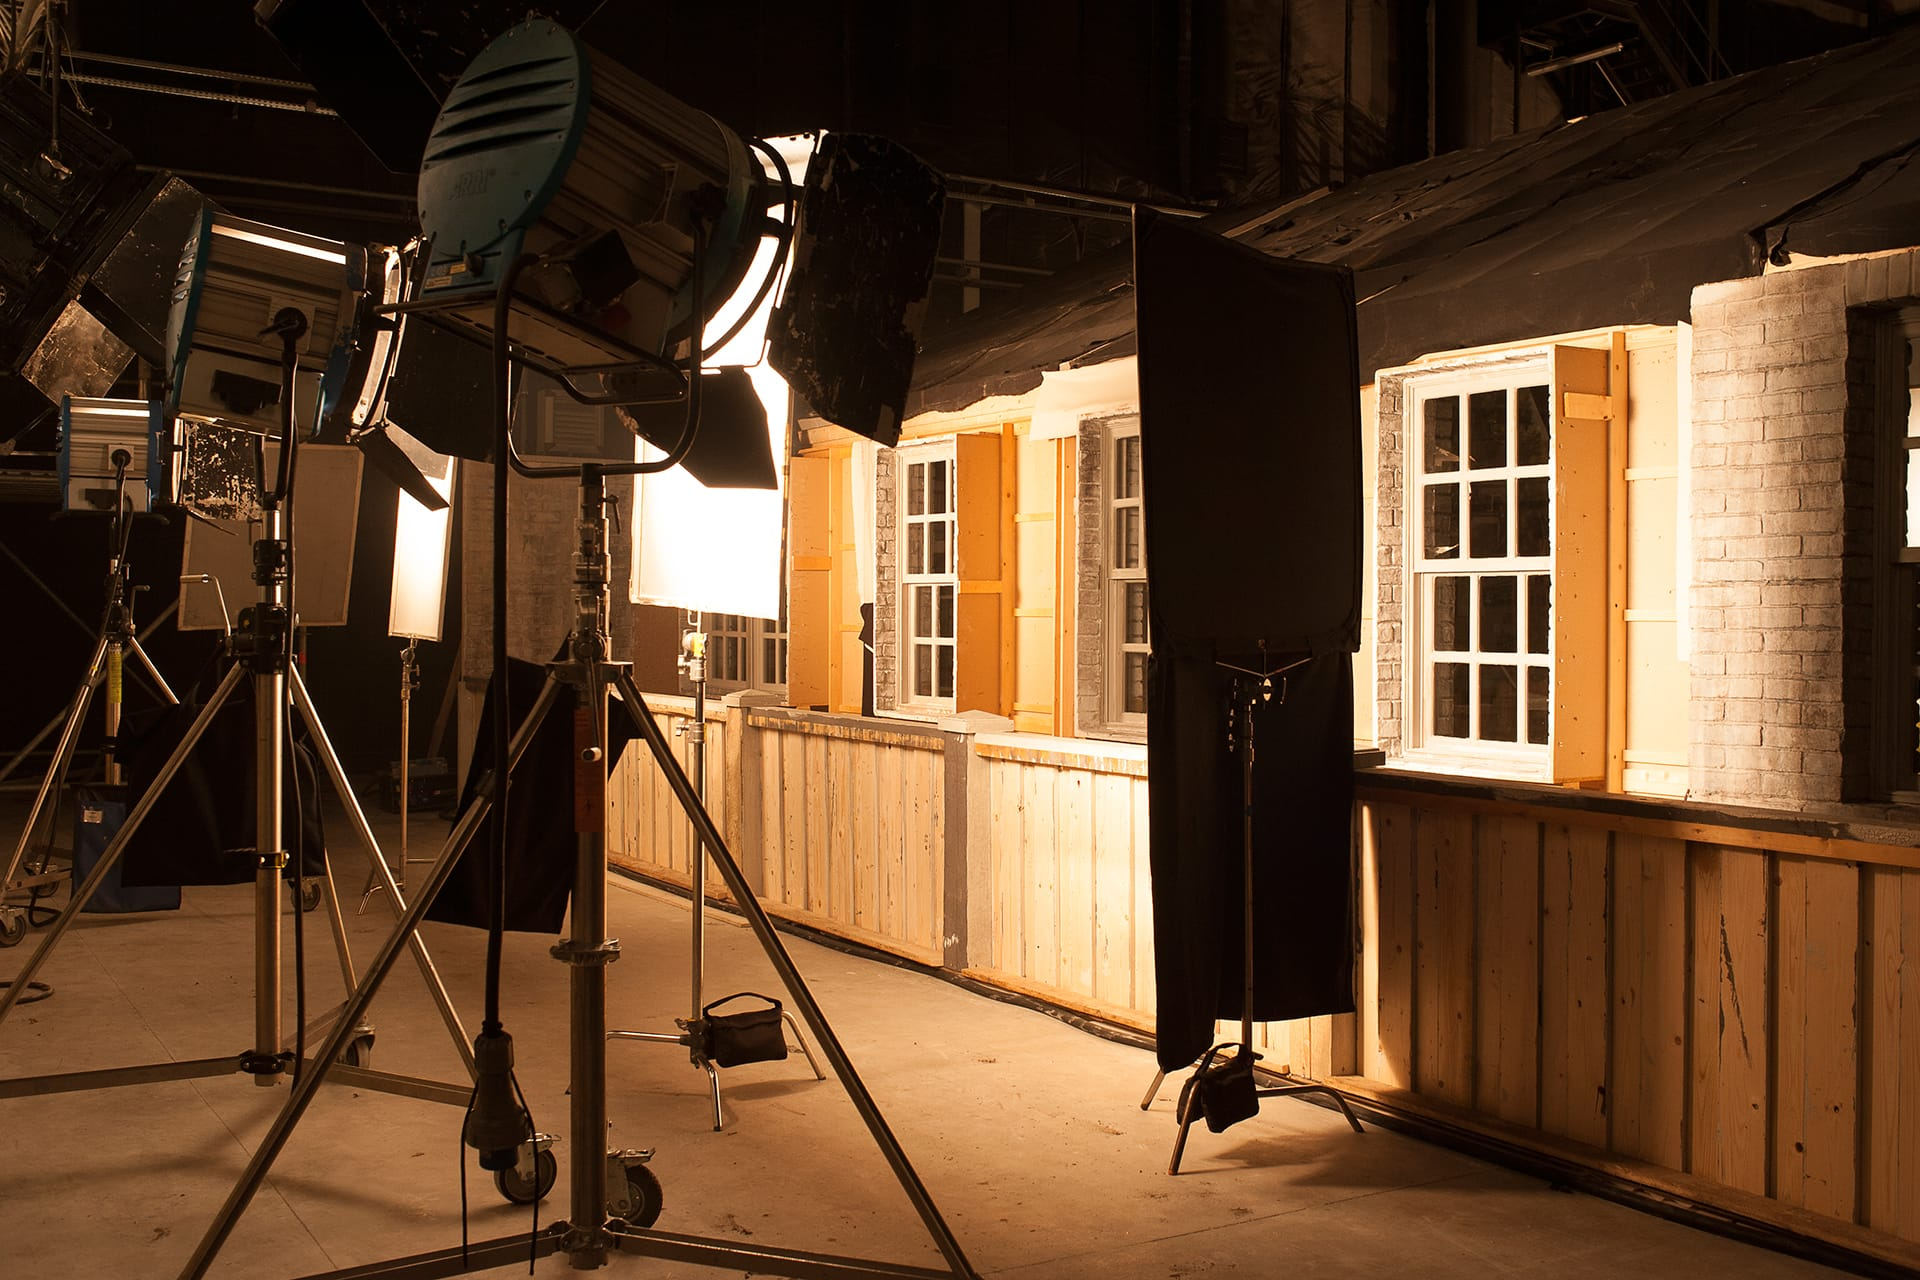 Getting the lighting just right for the Camp X set.